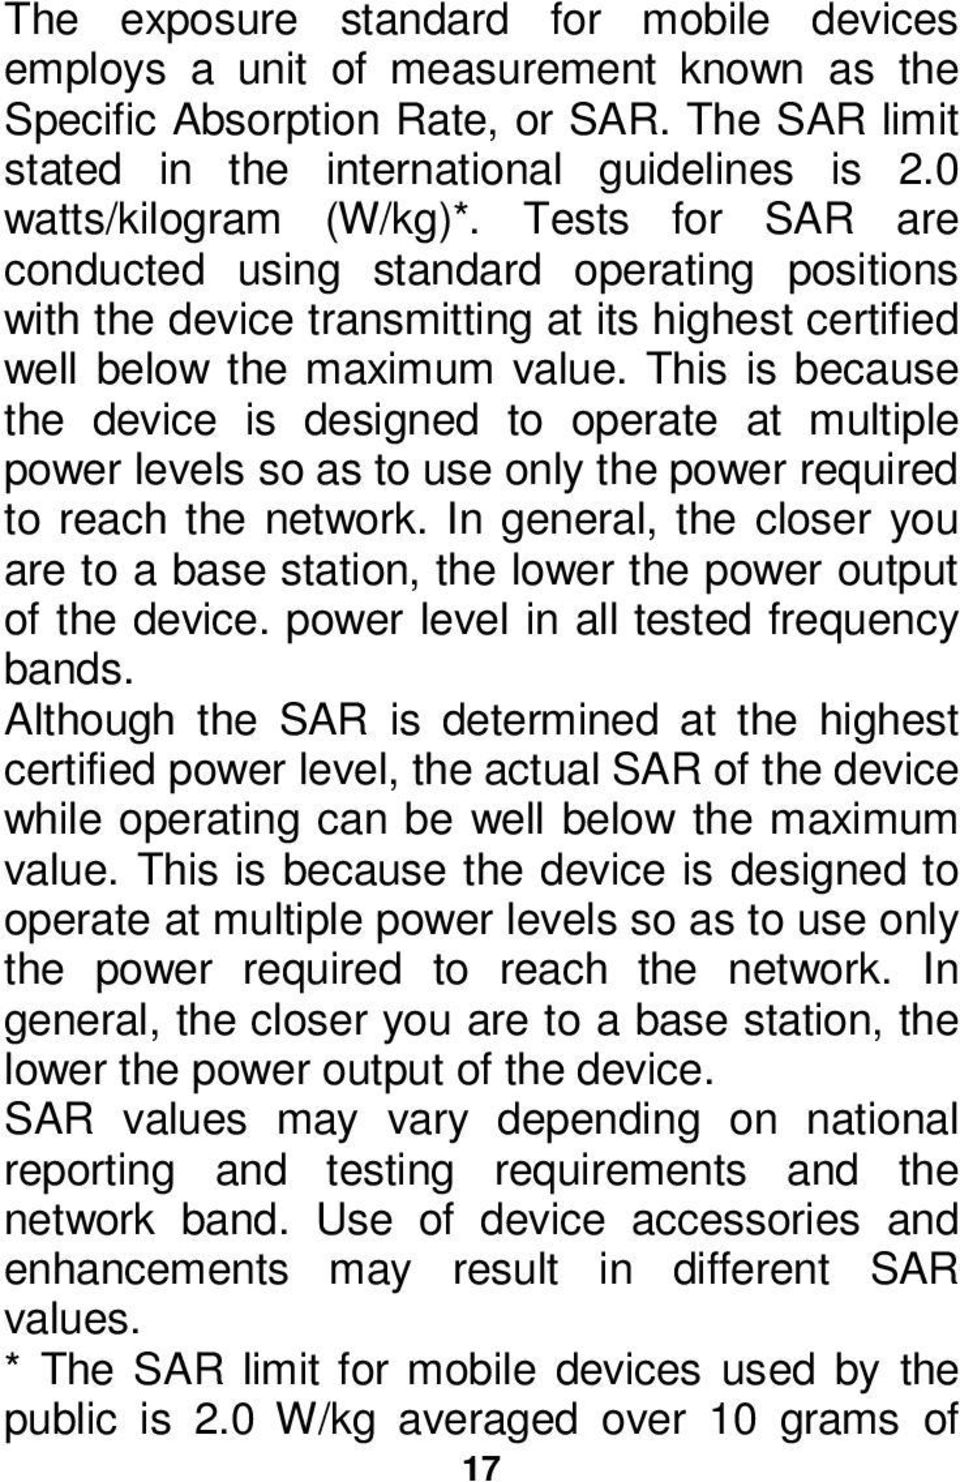 This is because the device is designed to operate at multiple power levels so as to use only the power required to reach the network.